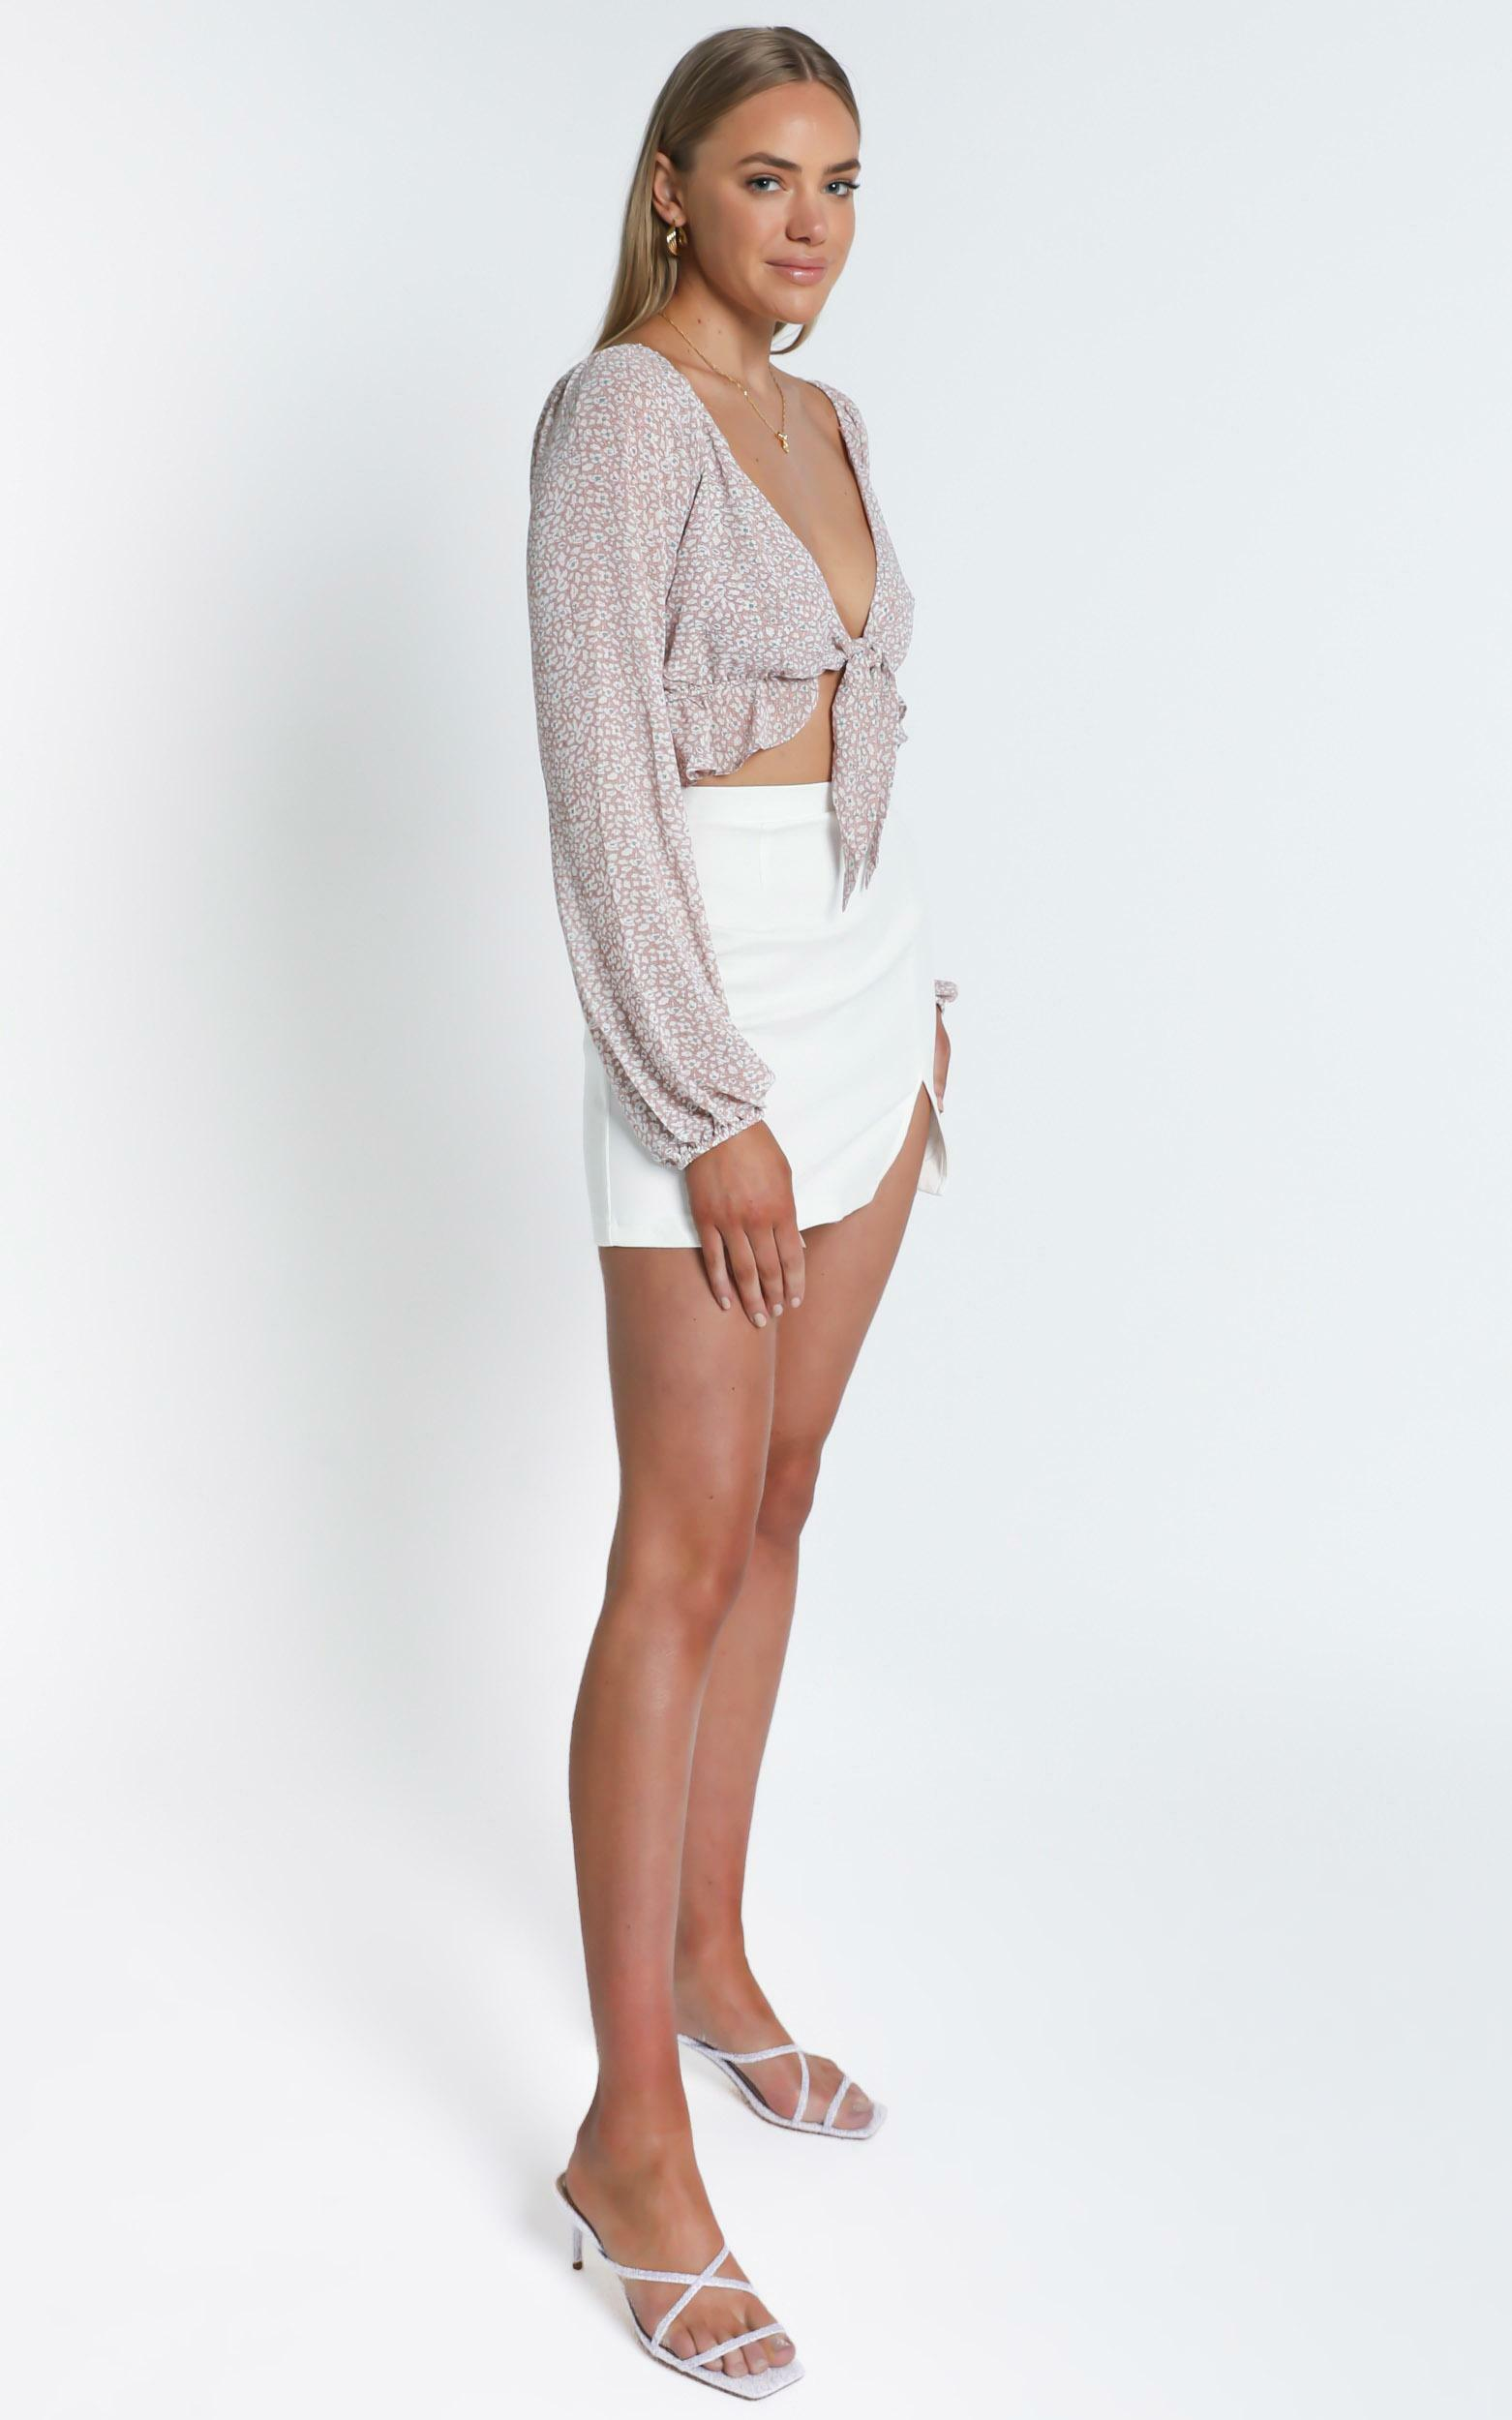 Maddison Top in Blush Floral - 6 (XS), Blush, hi-res image number null